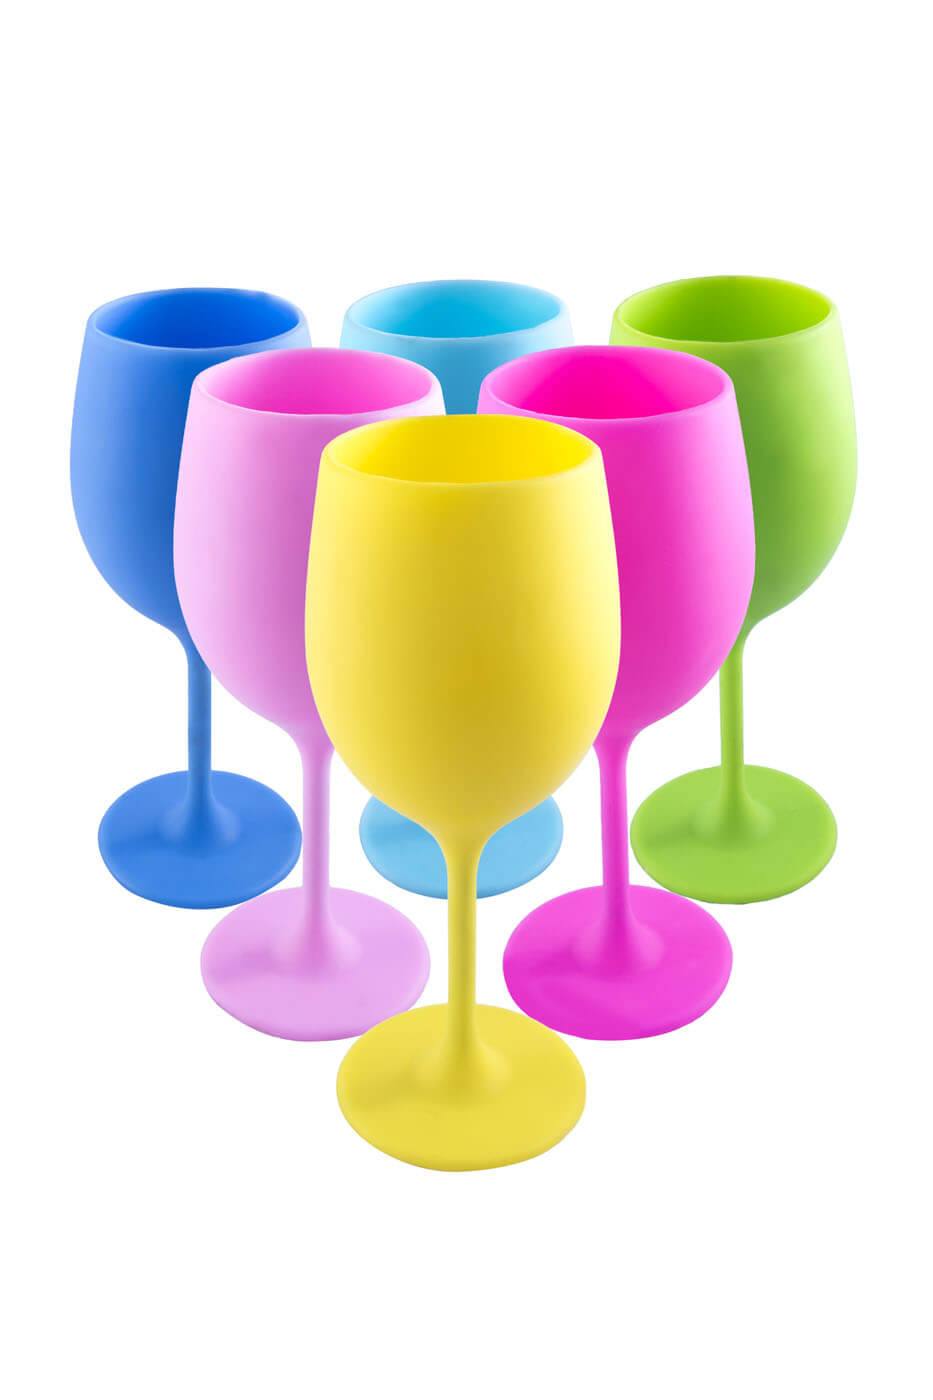 41e4d923395 Silicone Wine Glass - Pack of 6 Glasses